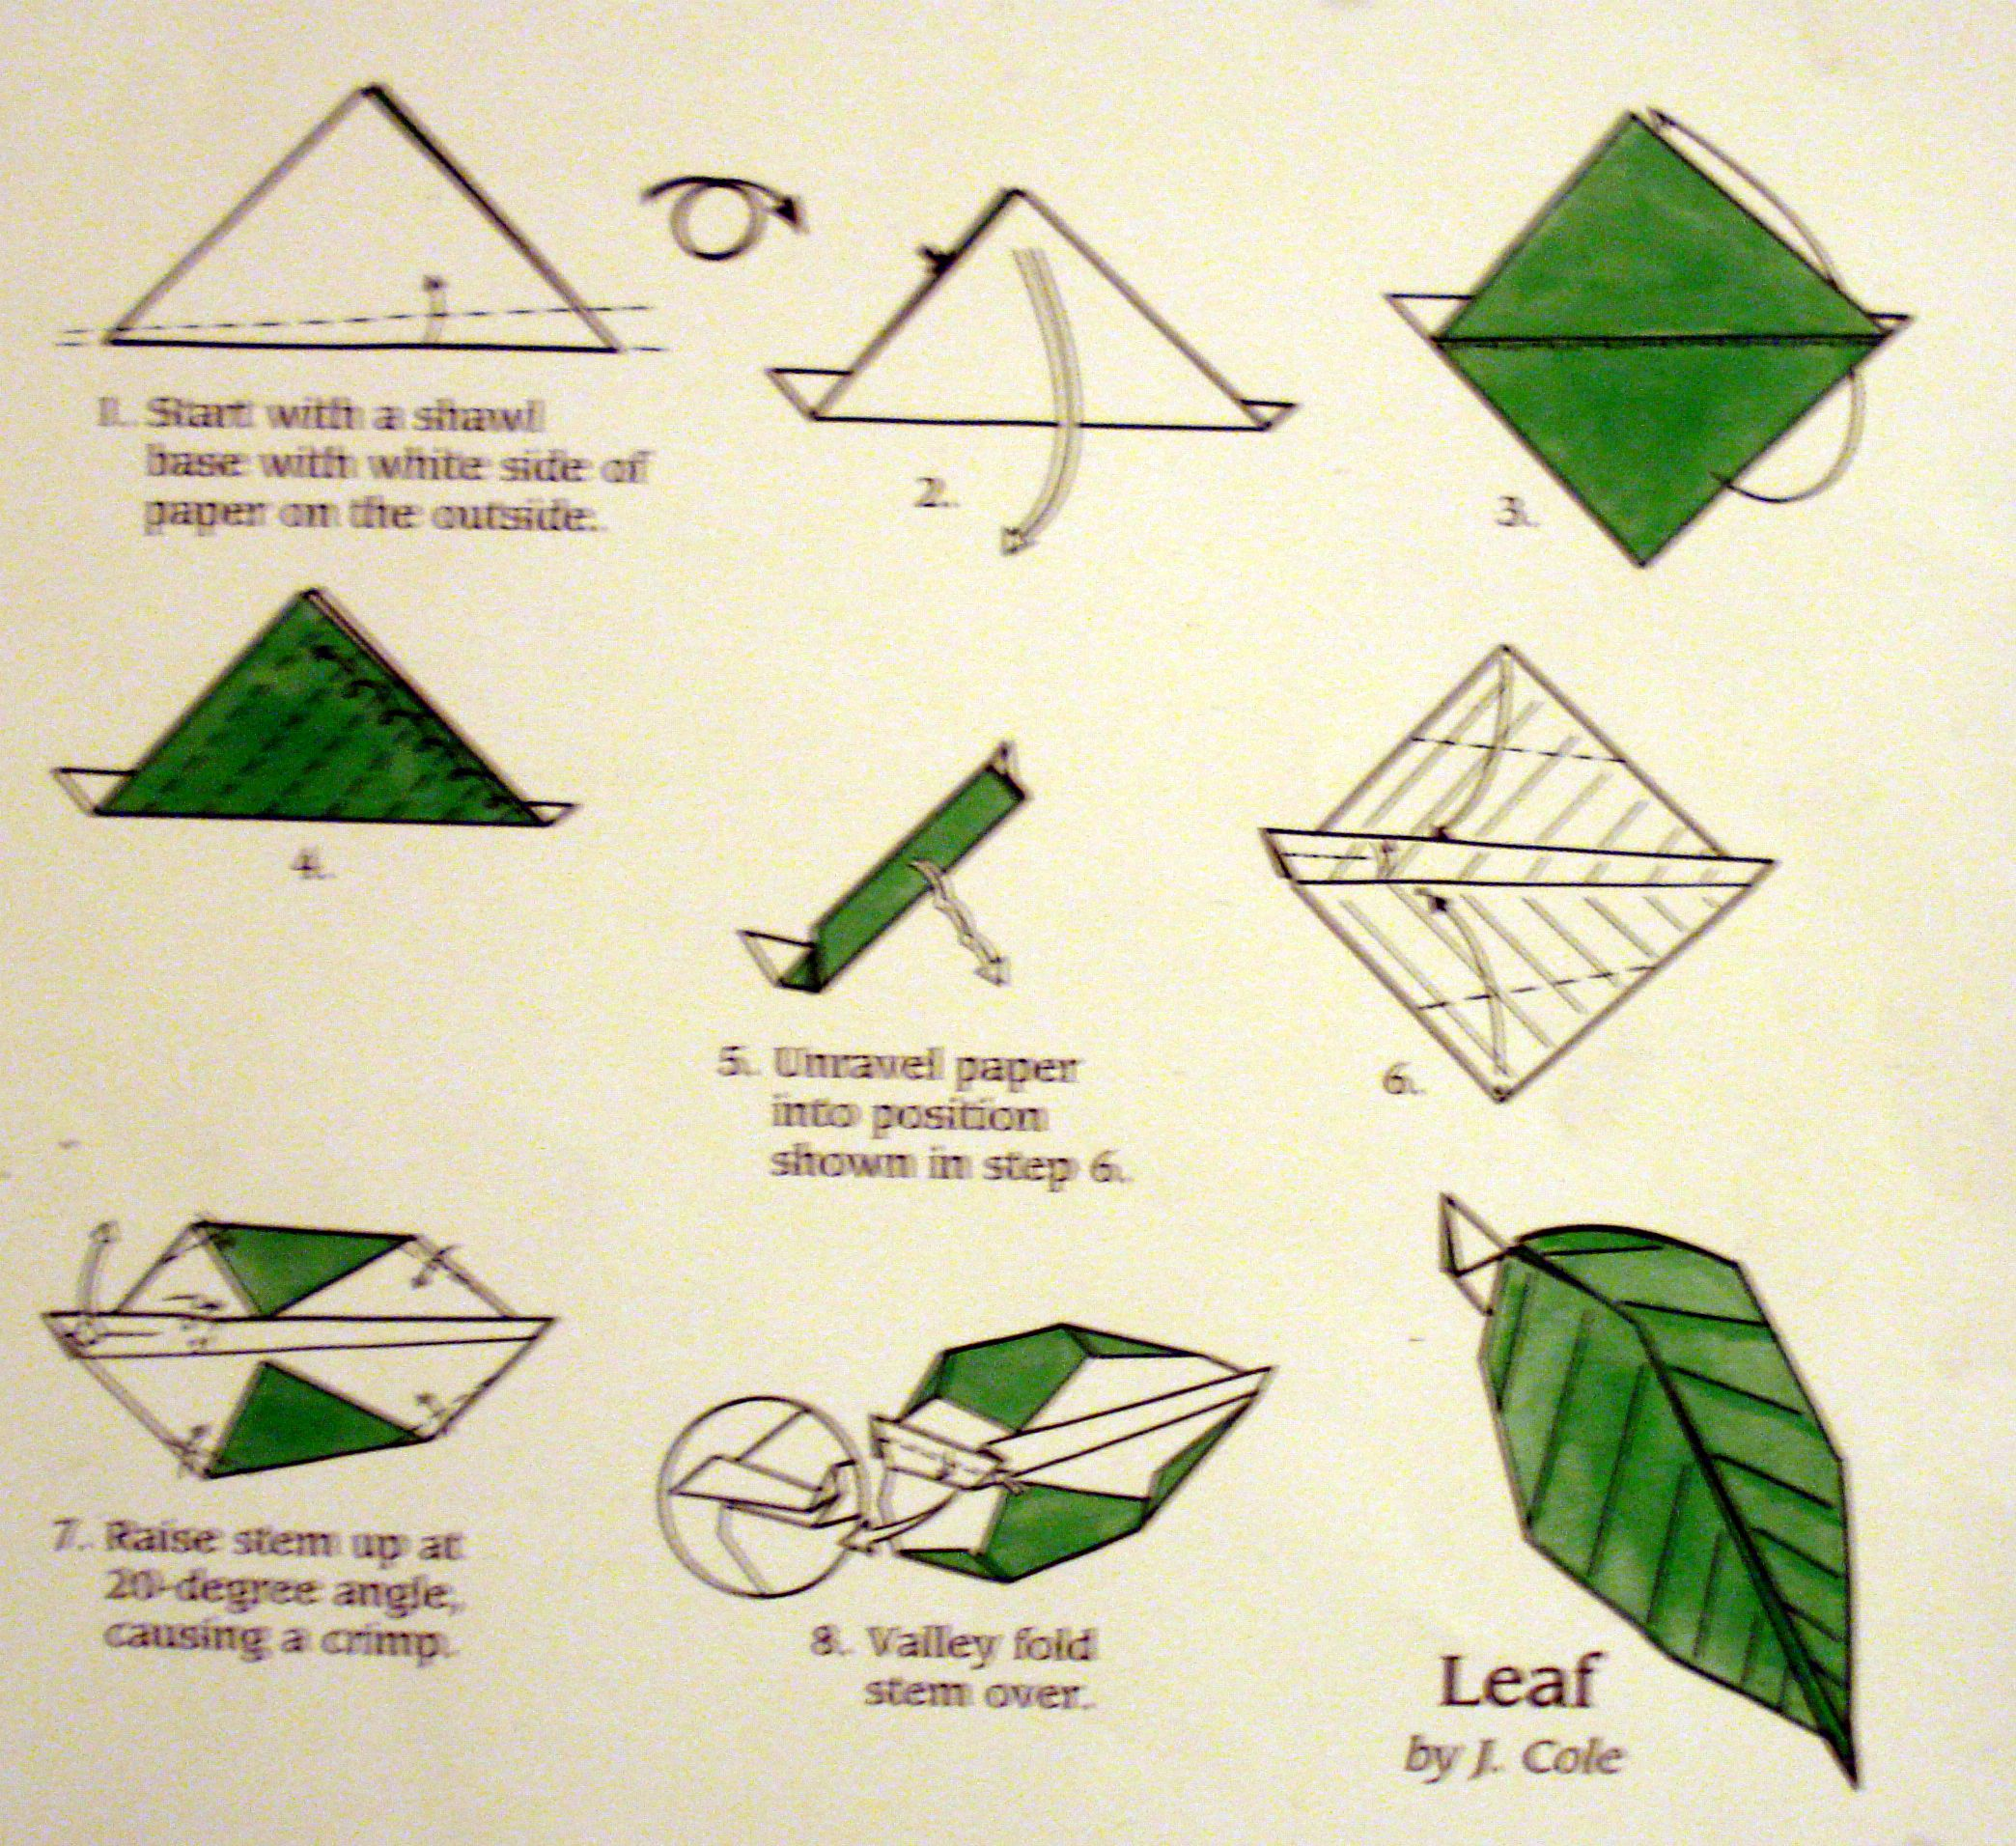 origami flower diagram in english glowshift oil pressure gauge wiring best leaf instructions flowersleaf